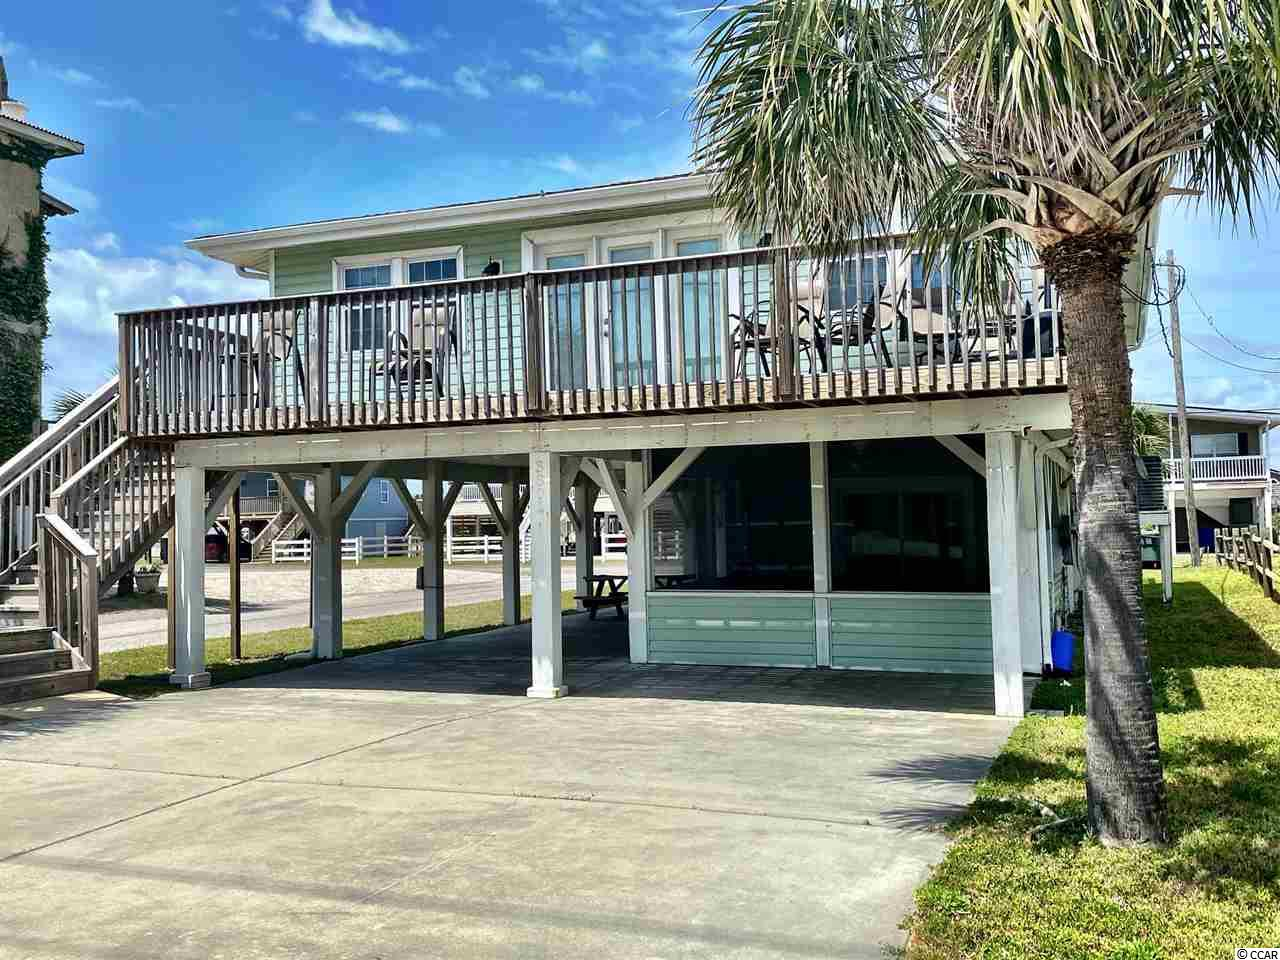 Oceanview!  Just across the street from the beach in family friendly Cherry Grove.  This recently renovated 5 bedroom/3 bathroom home sits on a corner lot.  Granite countertops, laminate flooring, ceramic tile and furnished to a tee all for you, the new owner!  You have the ocean out front and water view out back.  Only used as a second home and it shows!  4 bedroom/2 baths upstairs and a separate one bedroom apartment downstairs!  Enjoy the ocean breeze from your oceanview deck.  You don't want to miss out on this one!